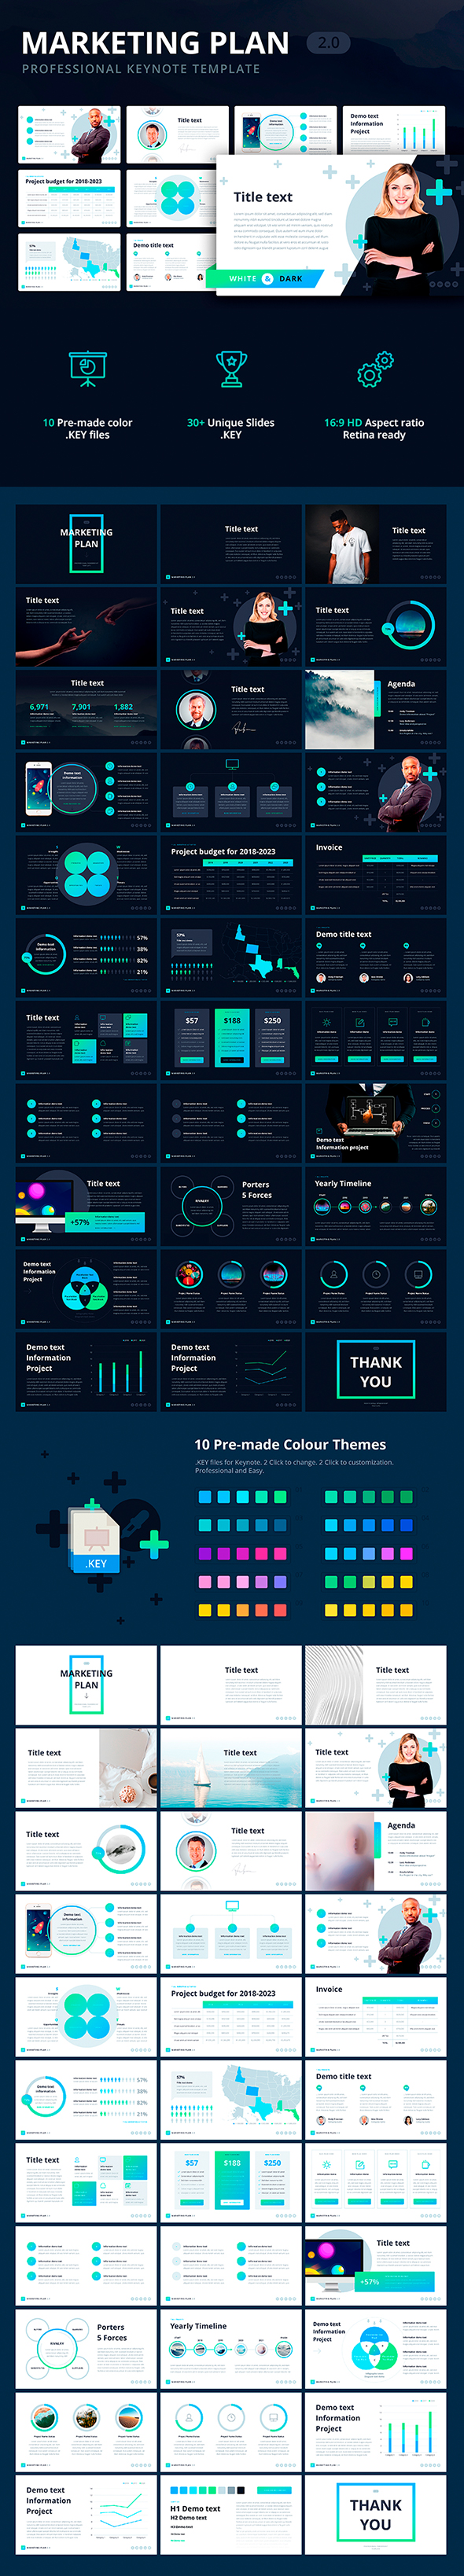 Marketing Plan 2.0 Template for Keynote - Keynote Templates Presentation Templates